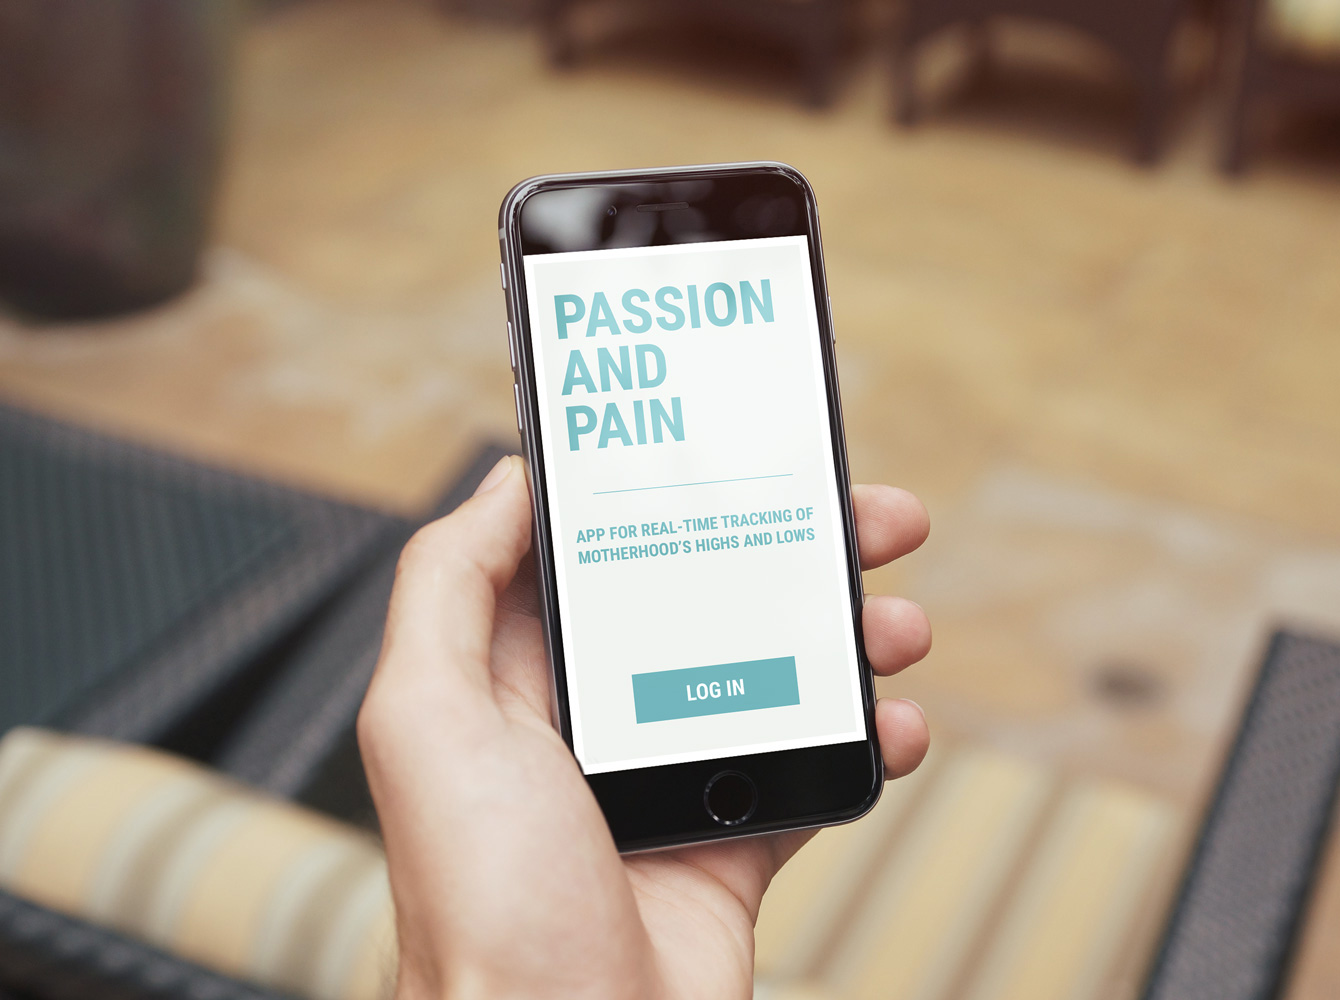 Passion and Pain app on mobile device